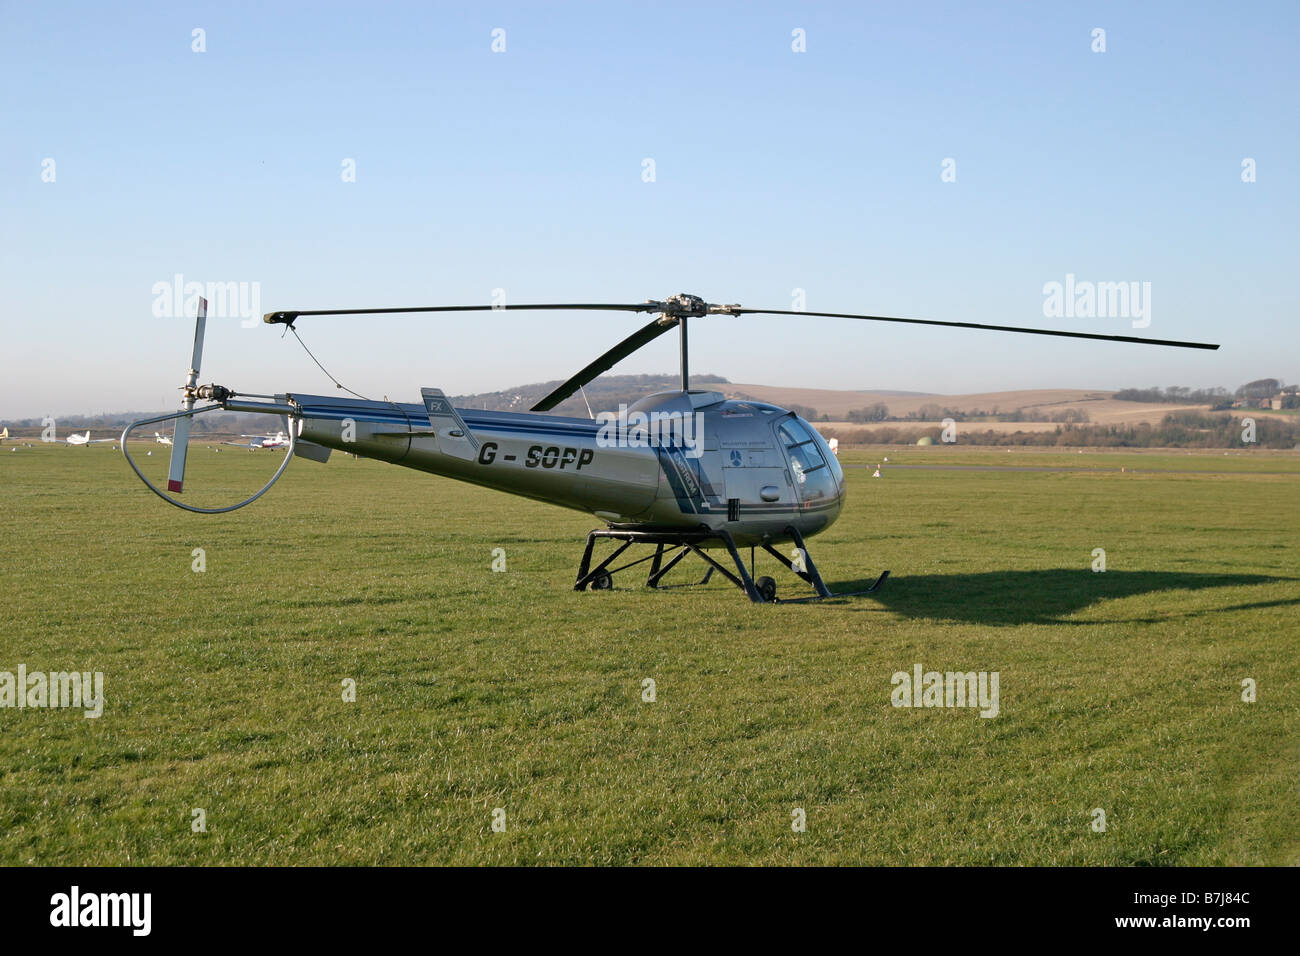 Helicopter parked at Shoreham Airport - Stock Image